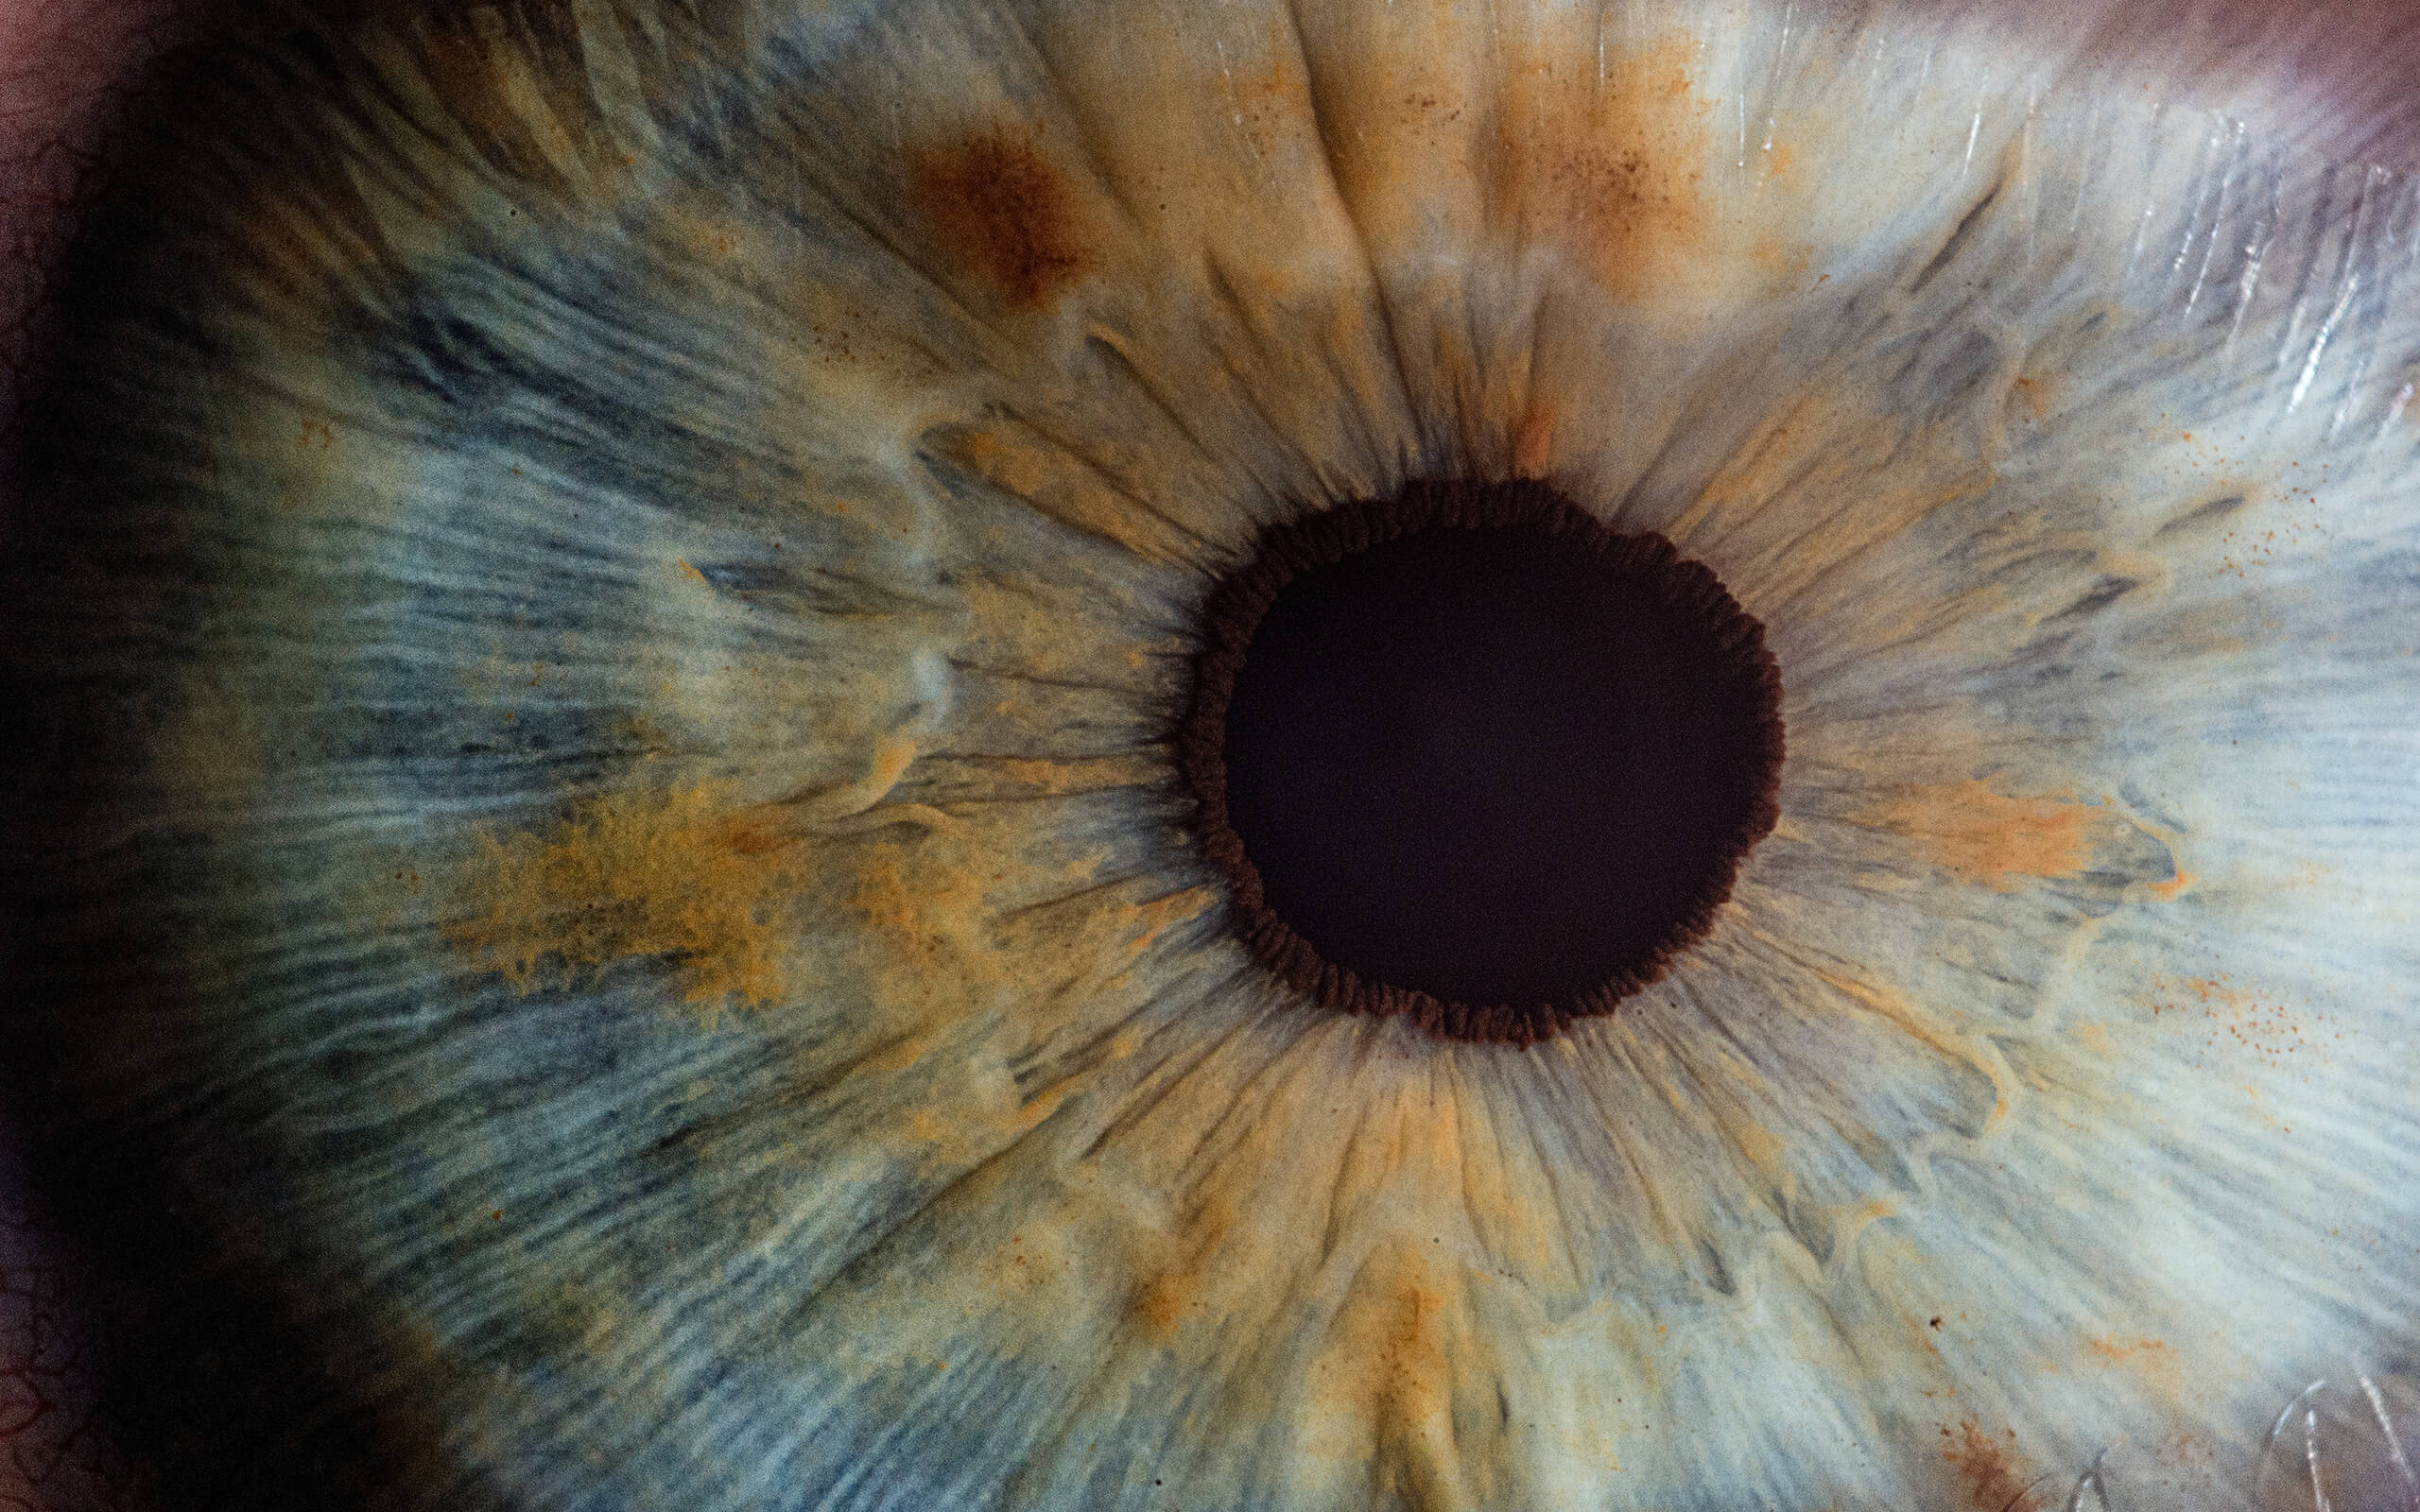 A close up photo of an eye